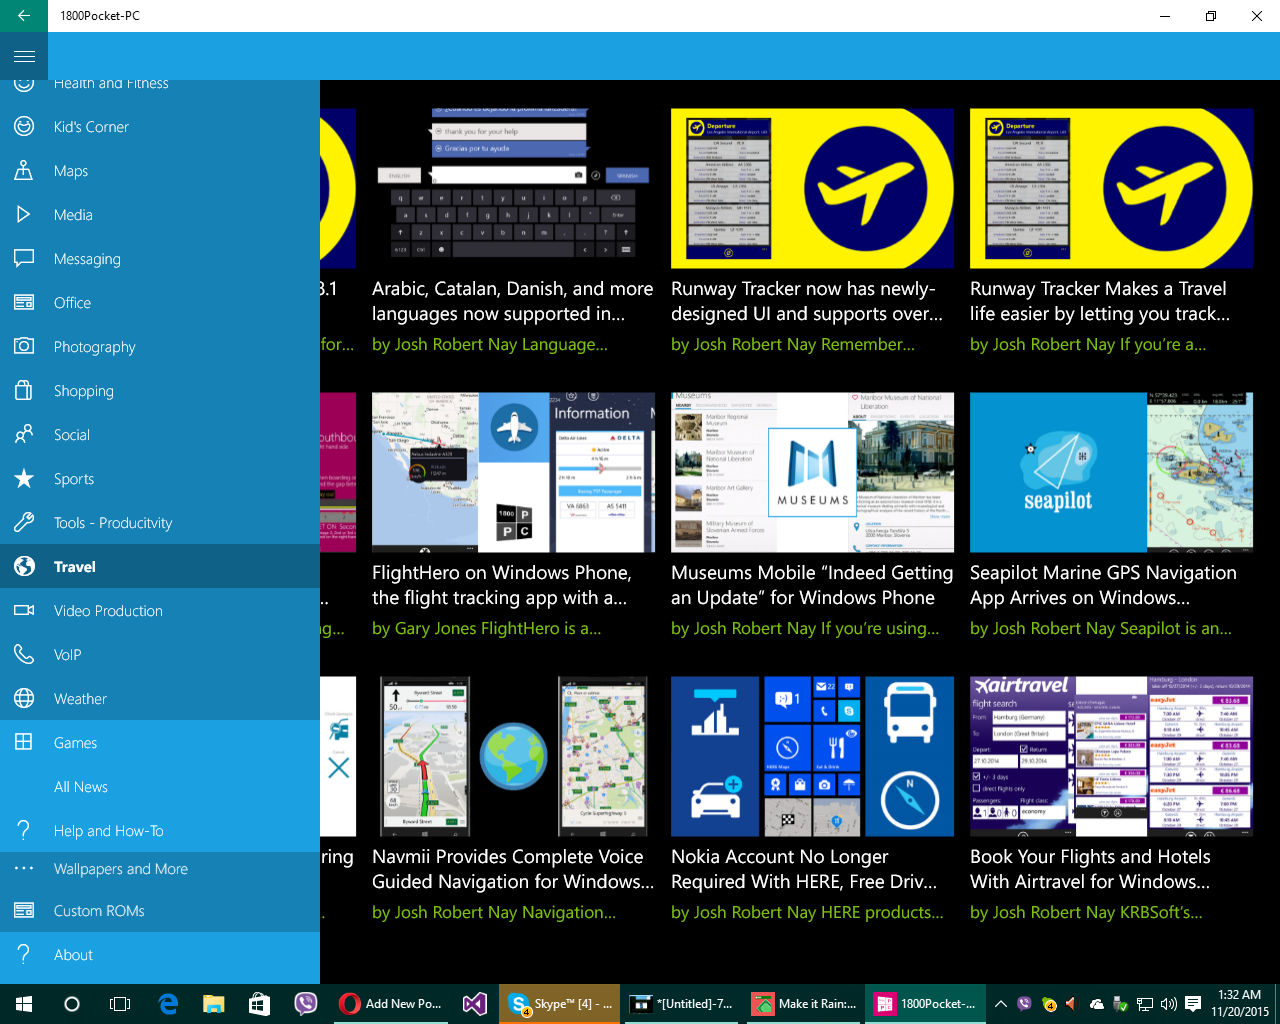 News apps for Windows 10, Win10mobile, Windows 10 Mobile devices